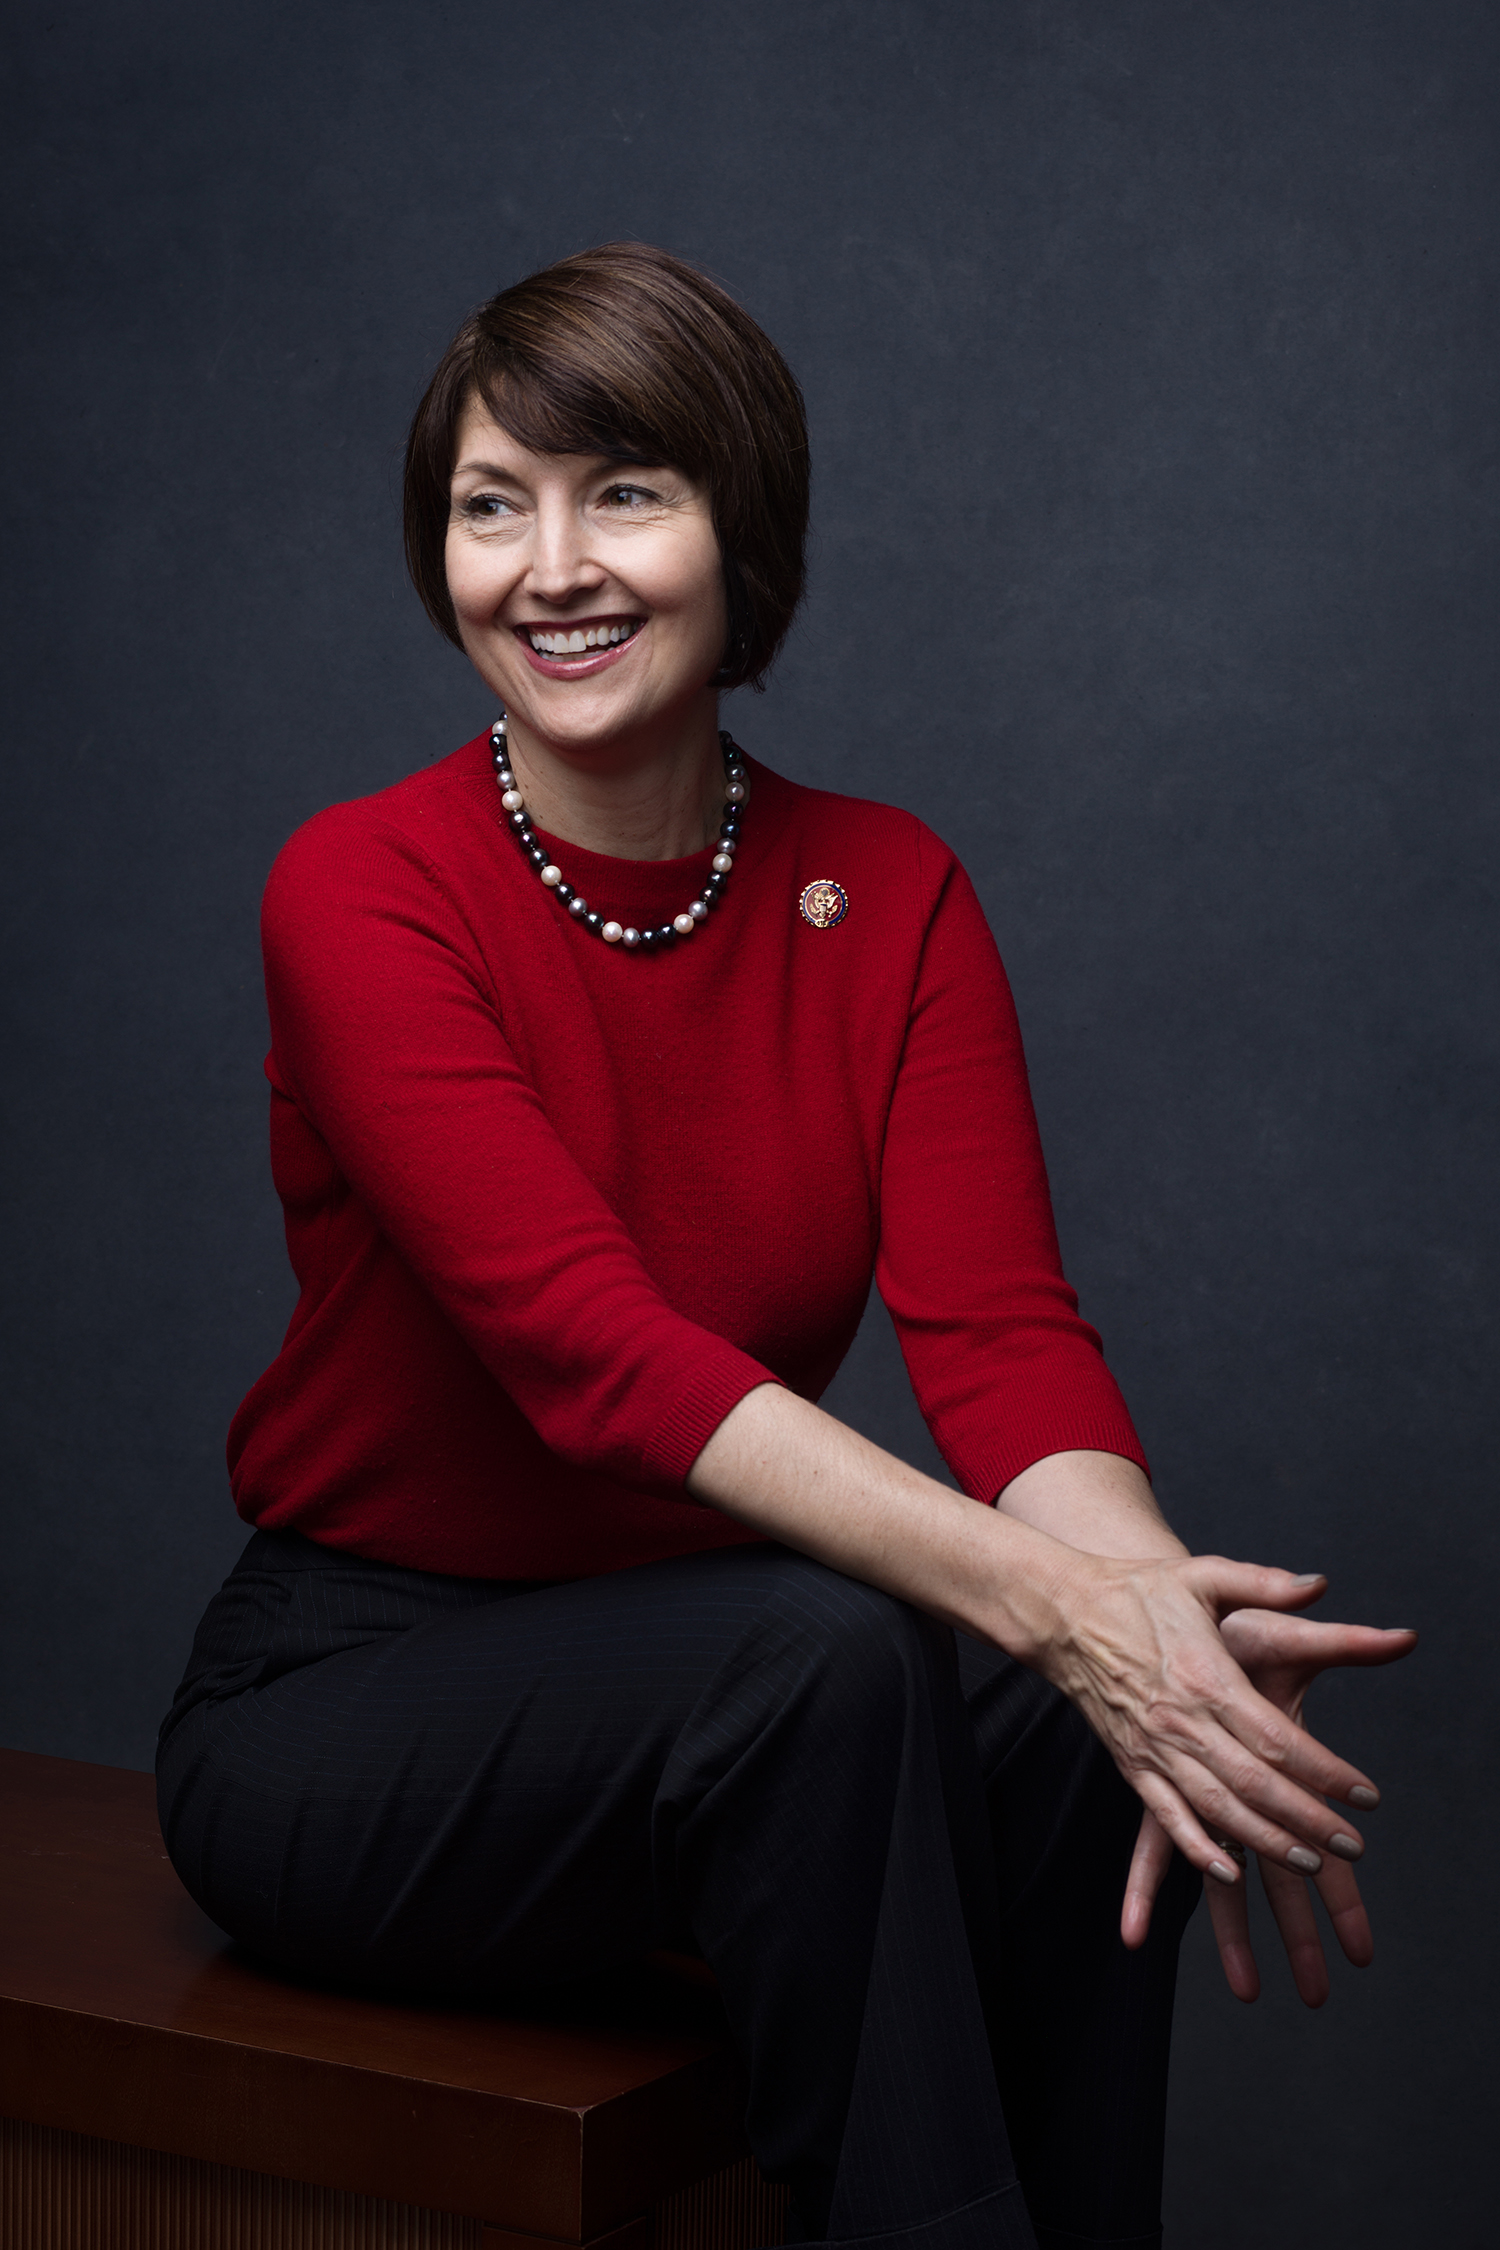 ***HOLD FOR WOMEN IN CONGRESS PROJECT, CONTACT MARISA SCHWARTZ TAYLOR*** Cathy McMorris Rodgers